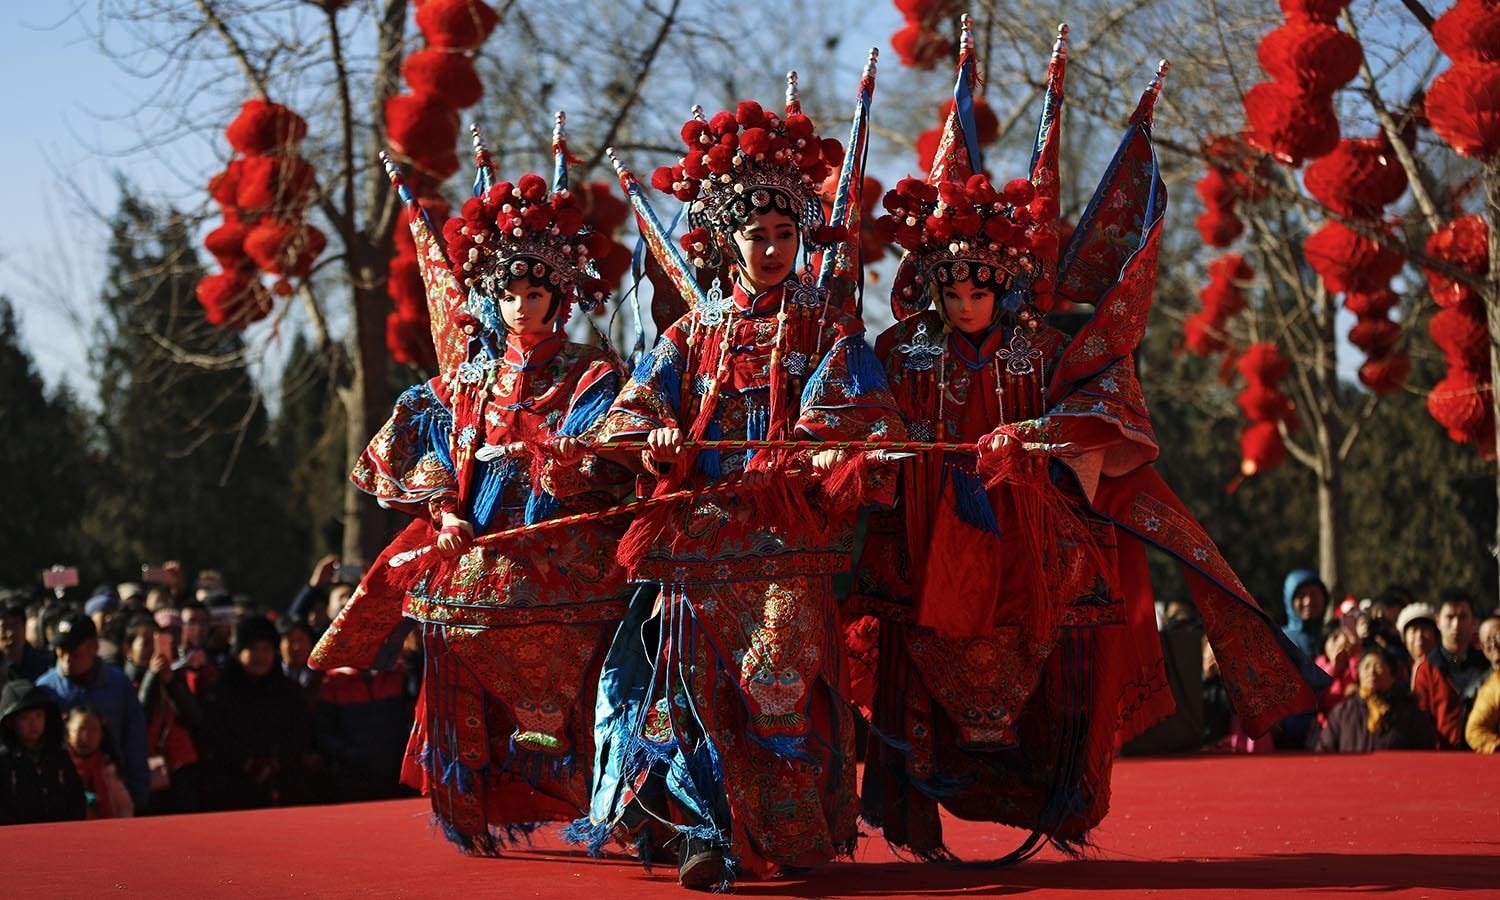 A Chinese dancer dressed in traditional costume performs a cultural dance on stage during a temple fair. ─ AP